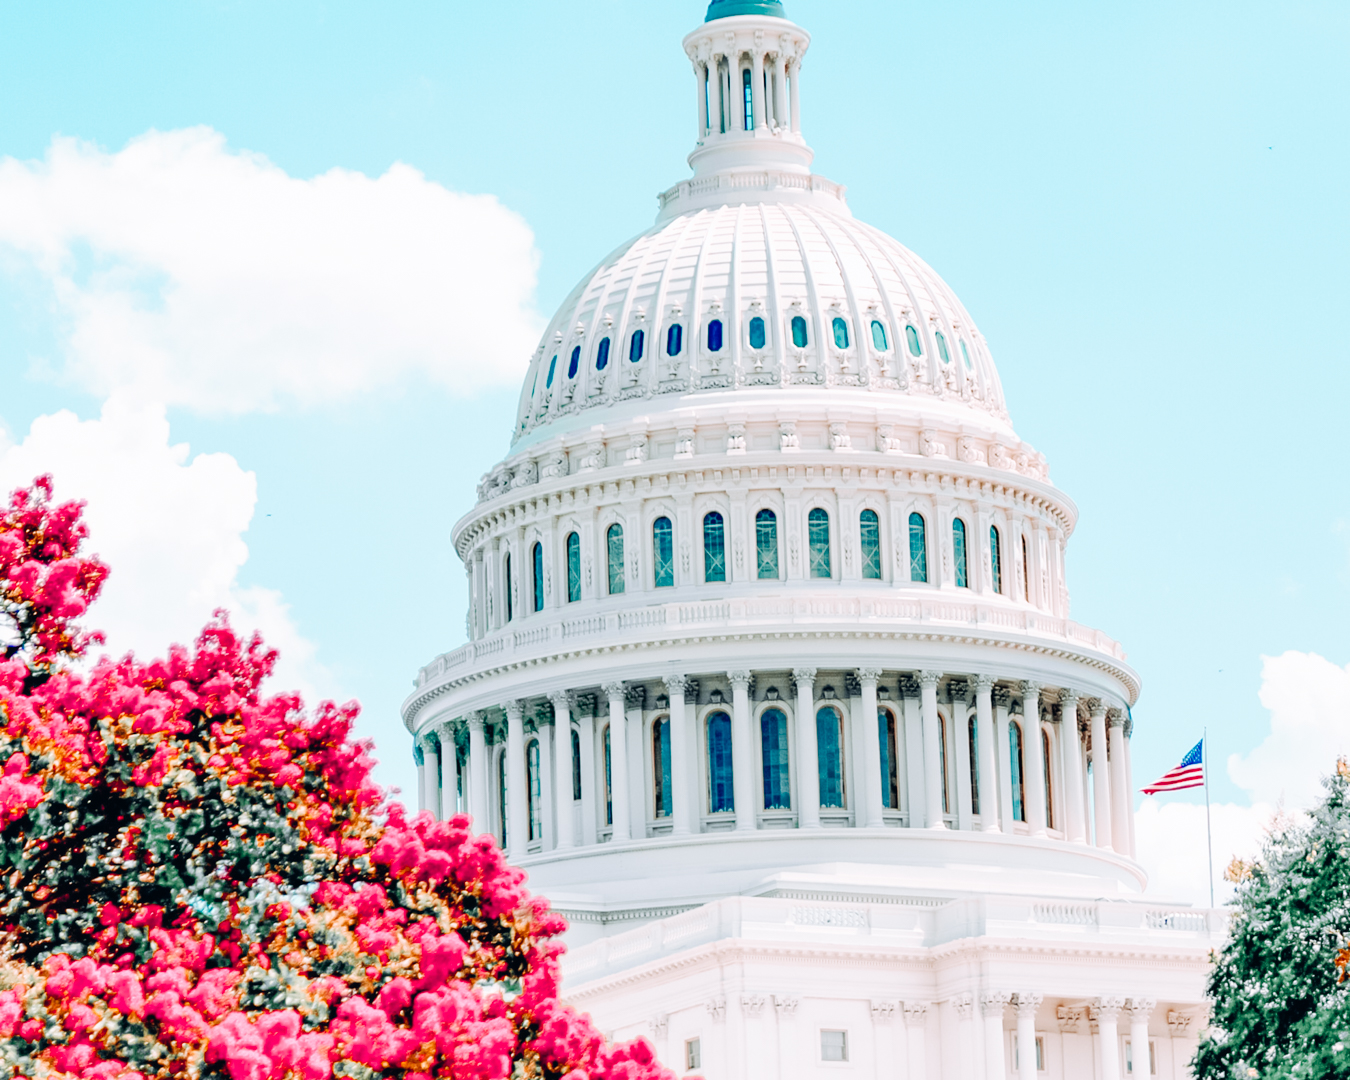 The Capitol and flowers